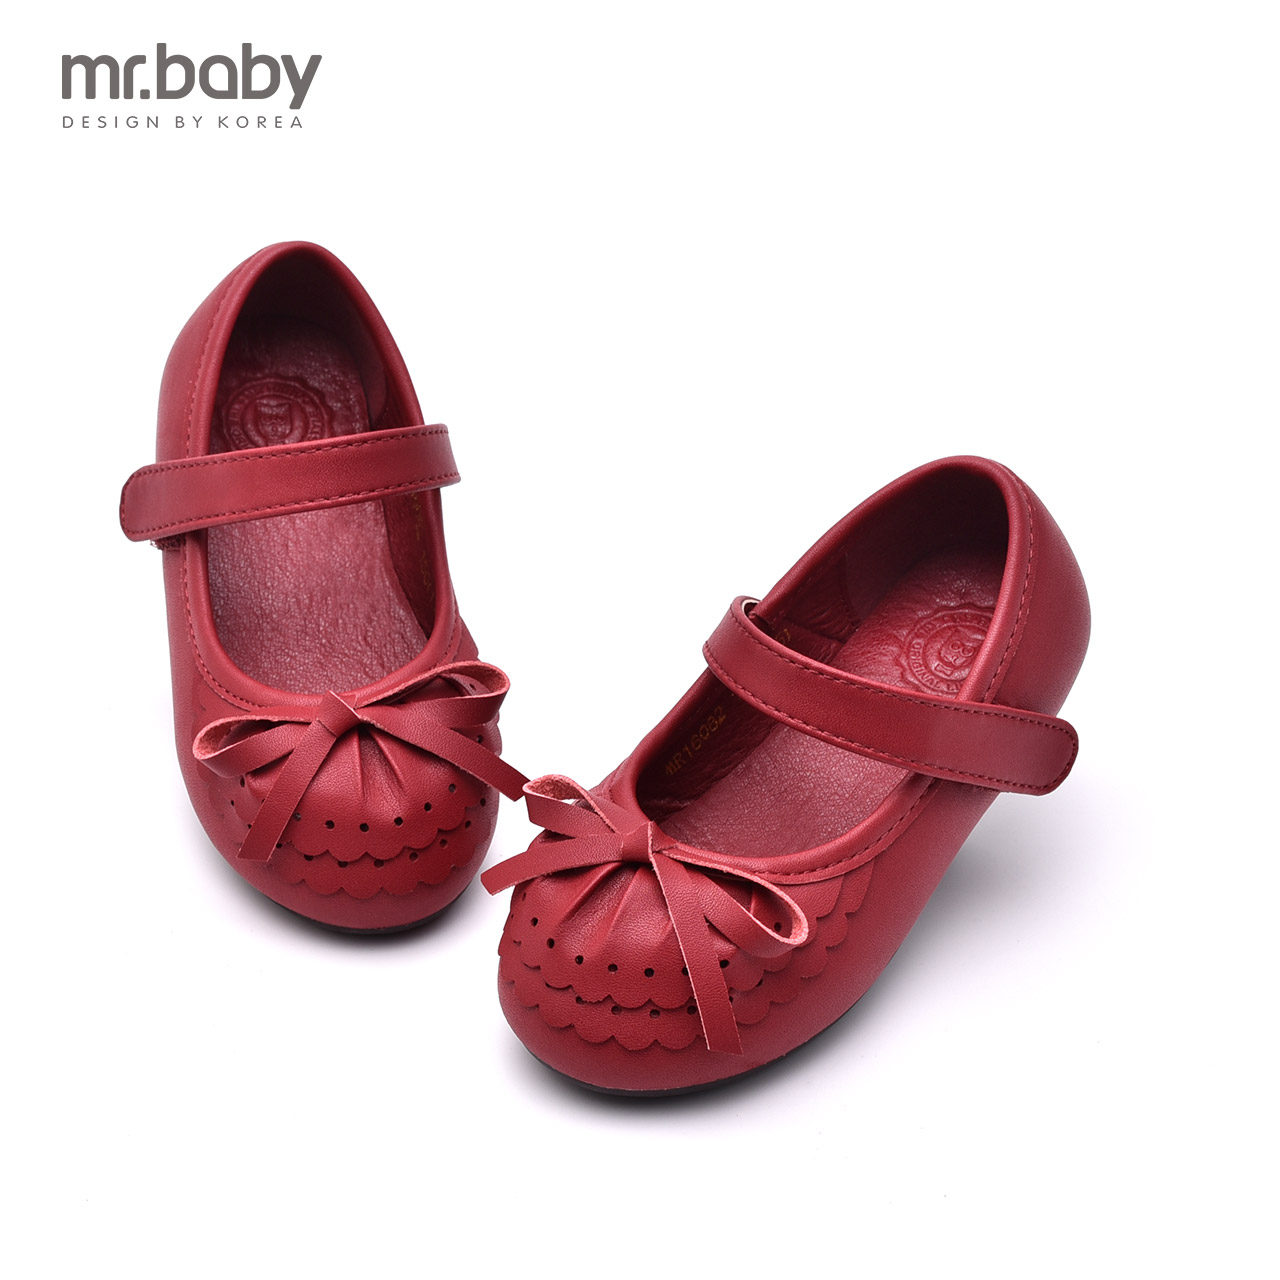 Mr. baby spring and autumn 2016 new bow shoes girls flouncing hollow single paragraph princess shoes